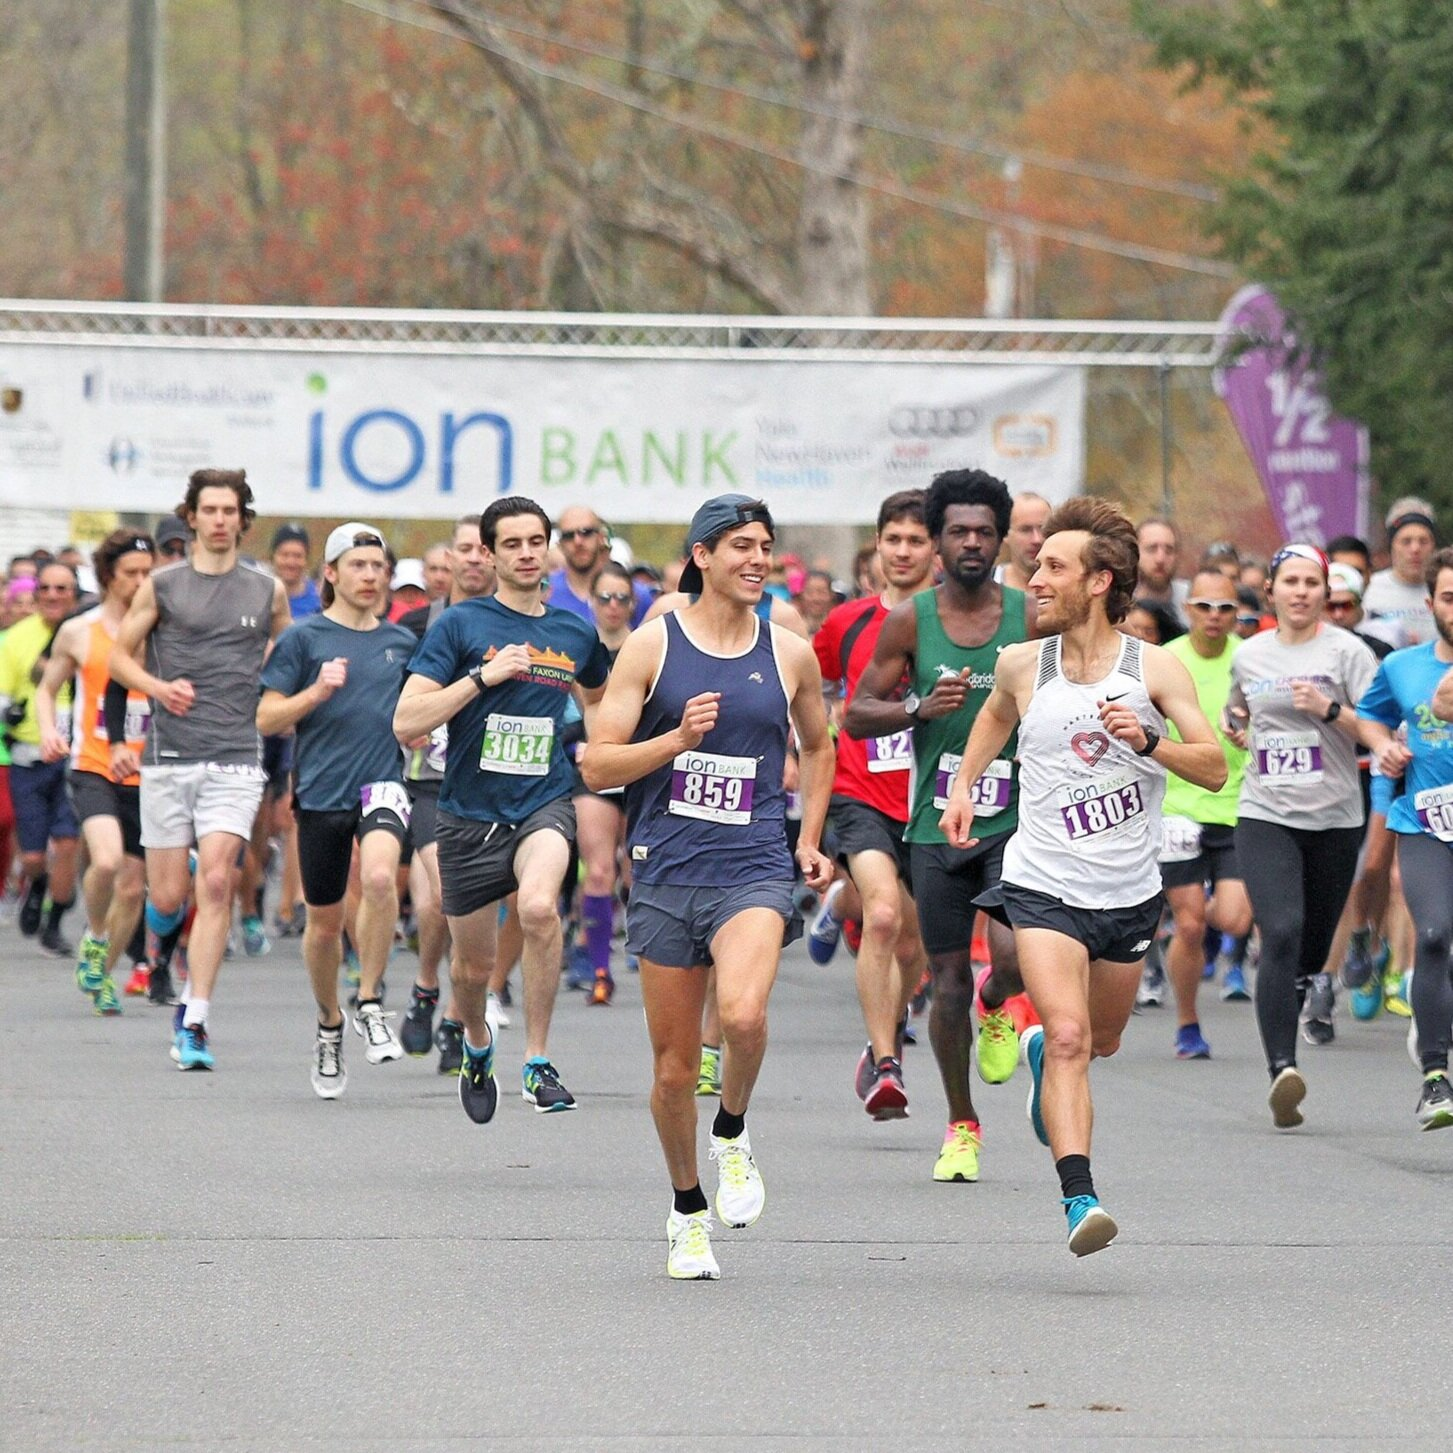 Ion Bank Cheshire Road Races - April 26, 2020Cheshire High School | Cheshire, CT